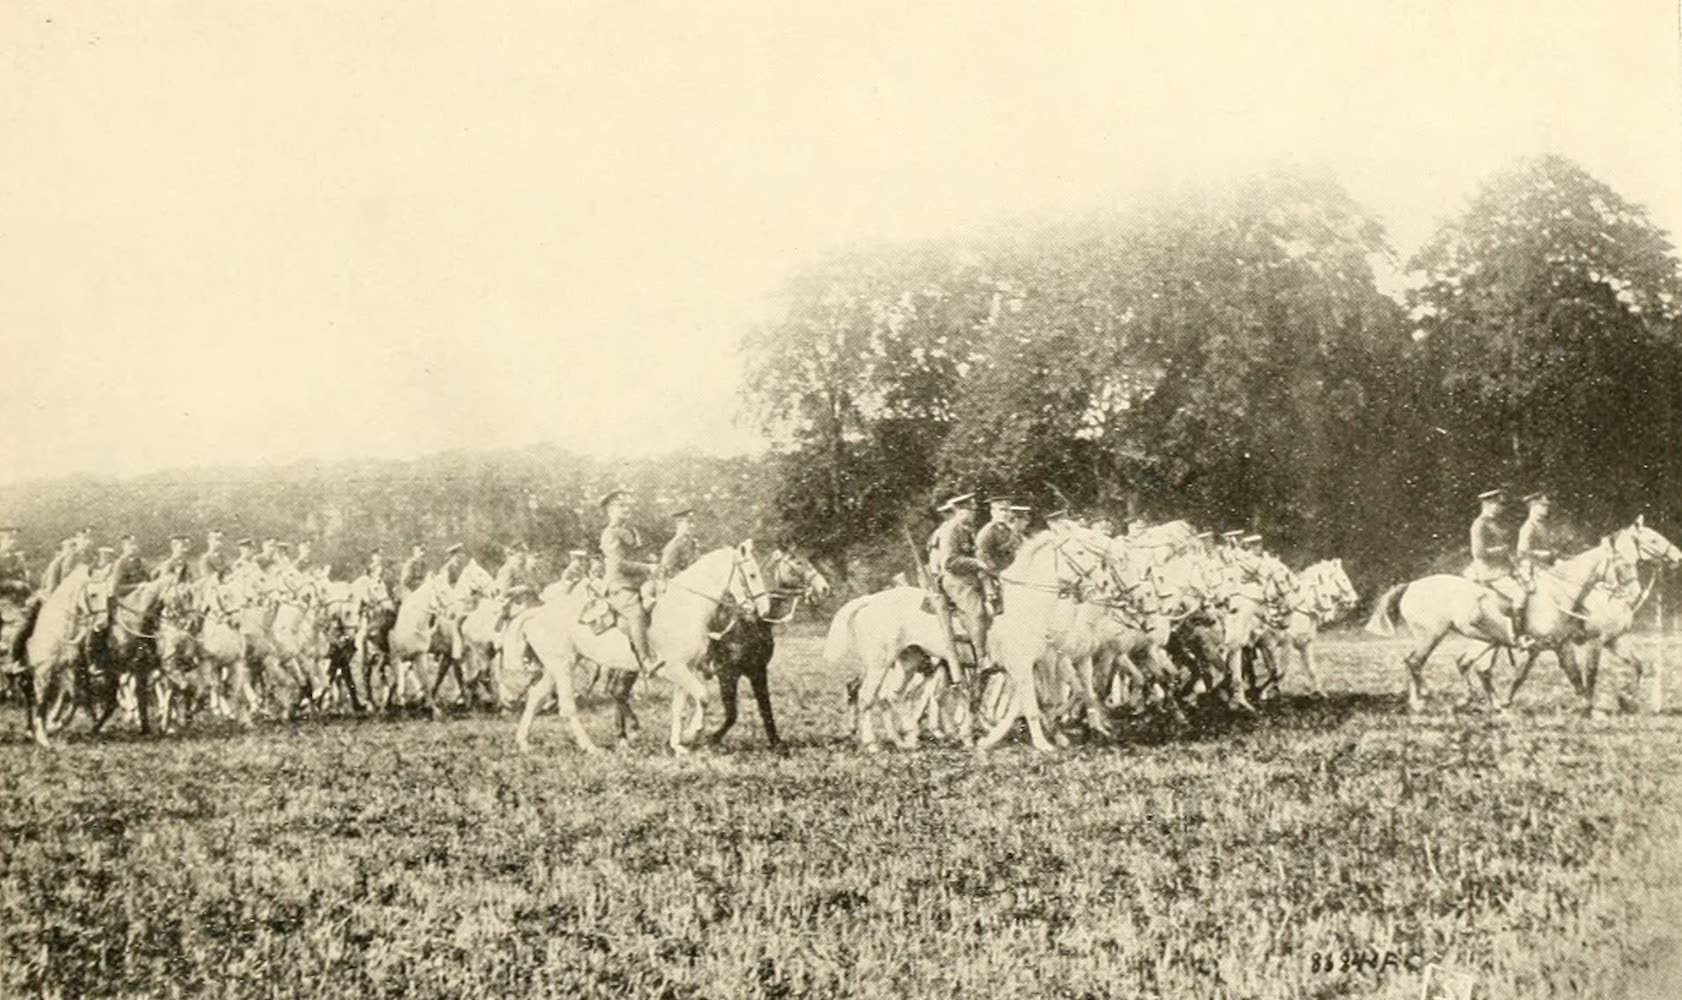 Laird & Lee's World's War Glimpses - Famous Scots Greys Win New Glories in France (1914)